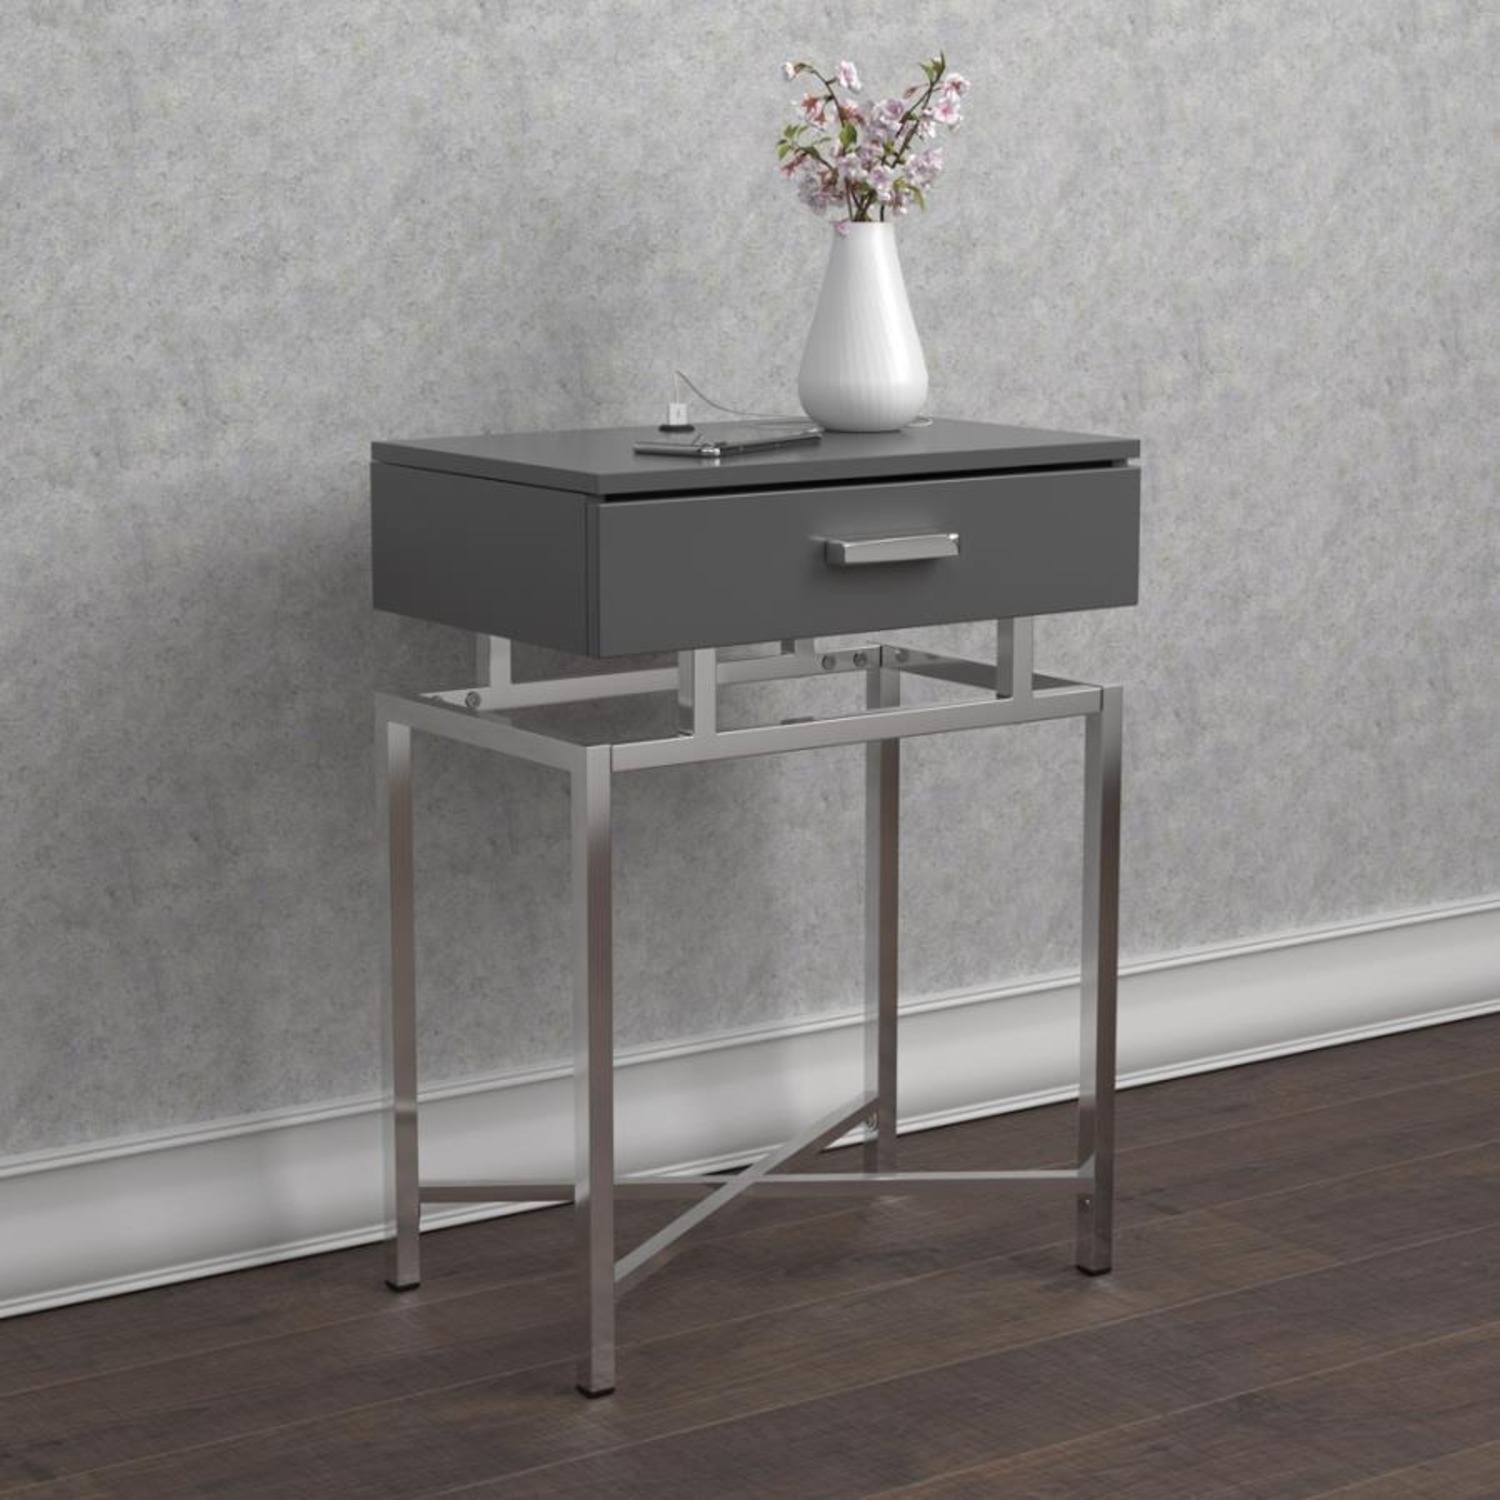 Accent Table In Grey High Gloss Finish - image-7